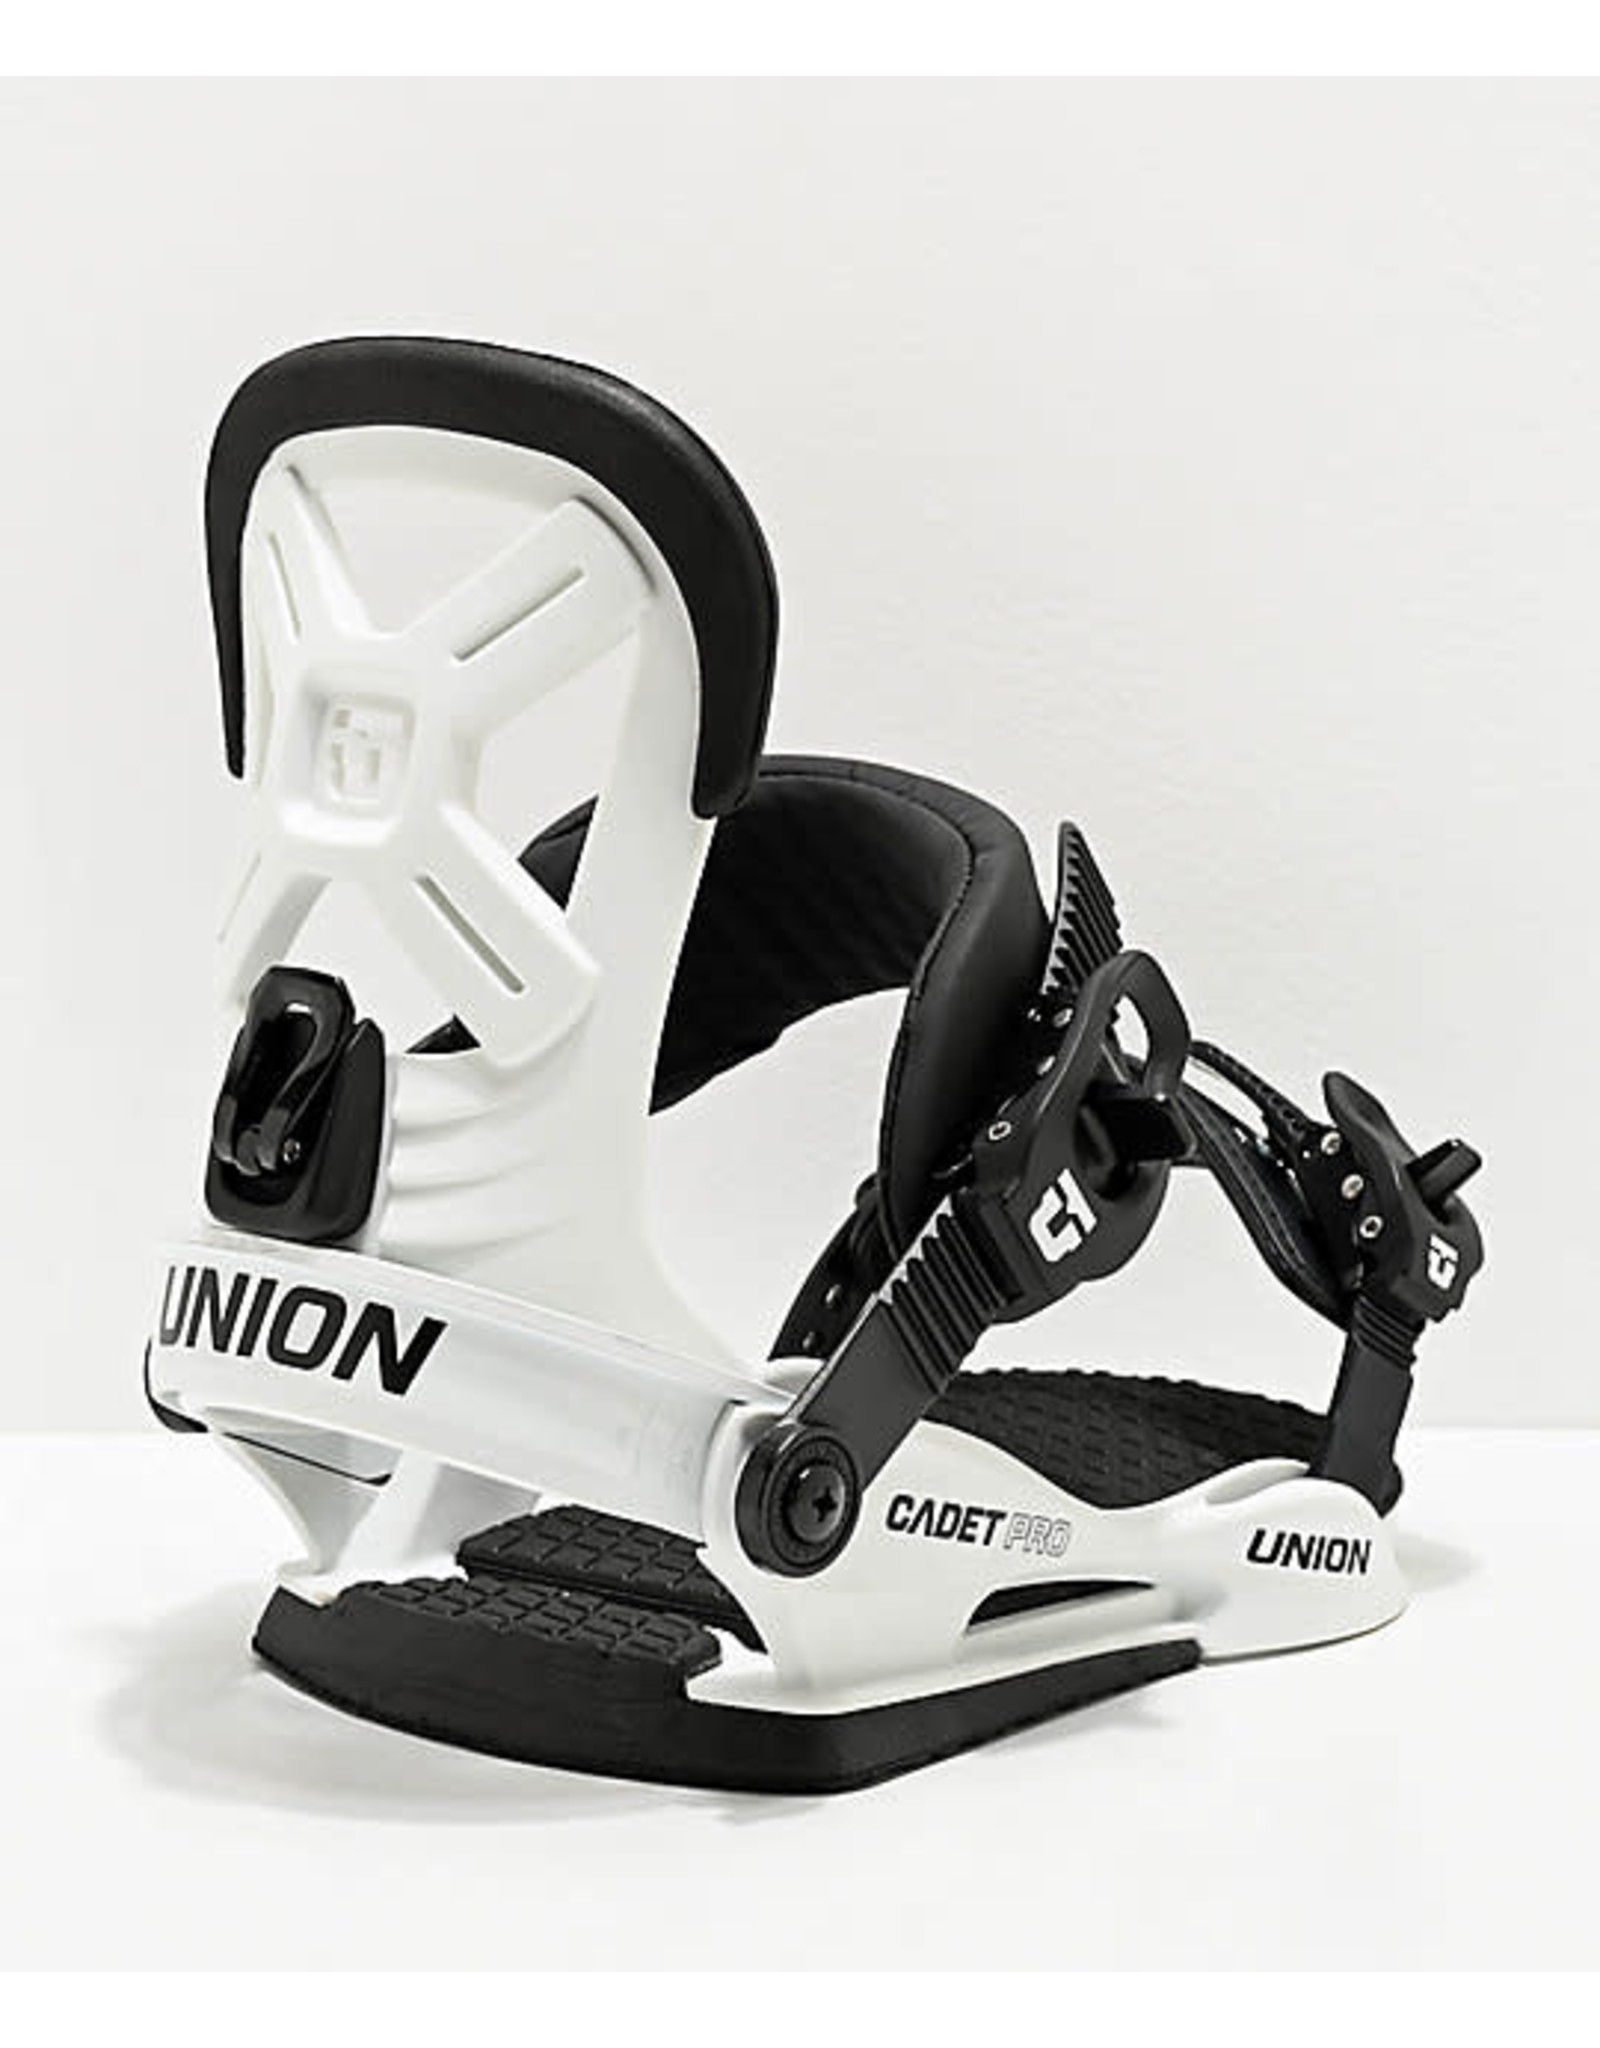 UNION UNION CADET PRO WHITE SMALL